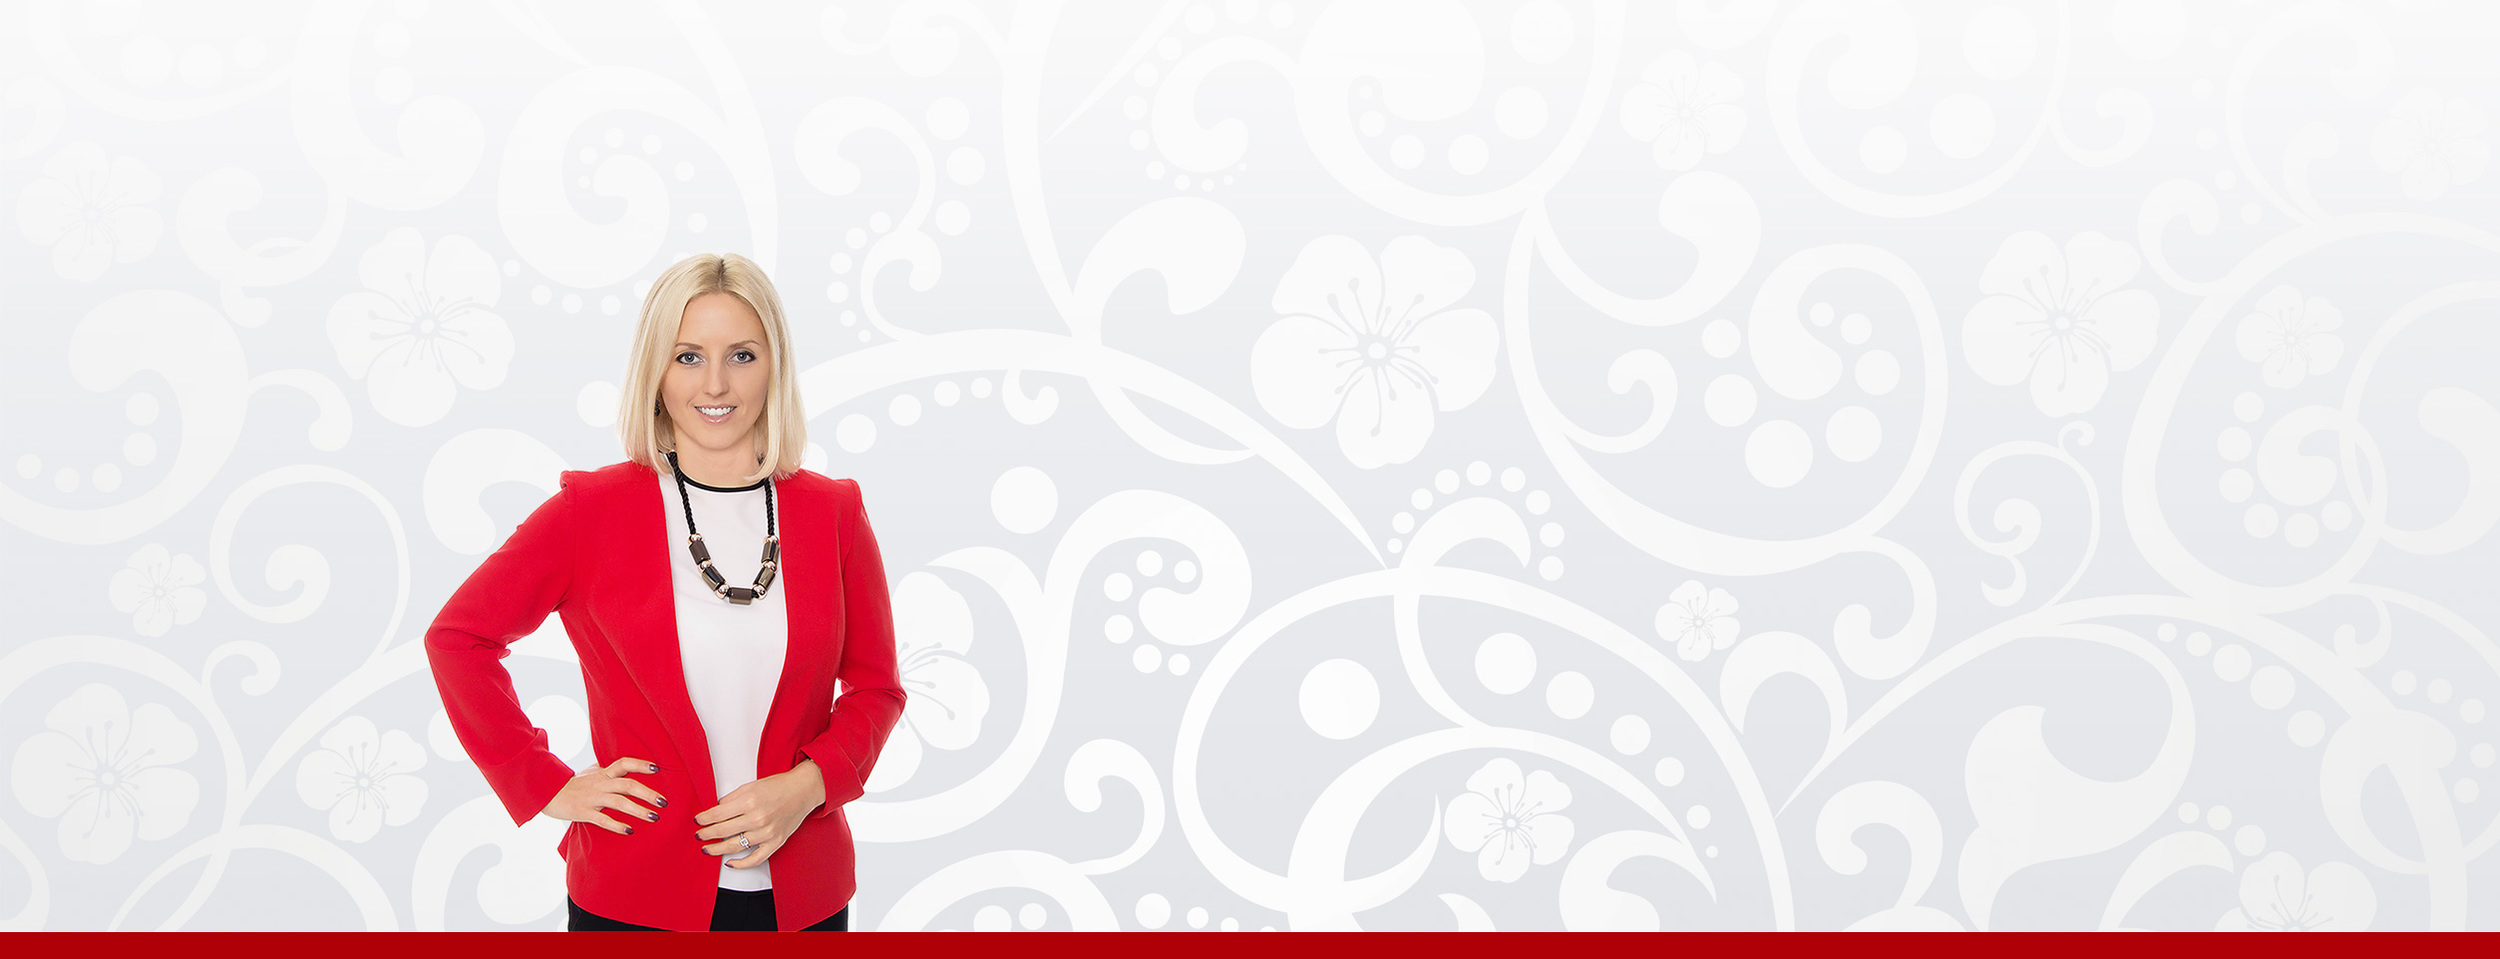 How can relationship coaching help you? Olga helps you to create and maintain a greater level of trust and mutual understanding, strengthen emotional connection and bring more romance in your relationship.